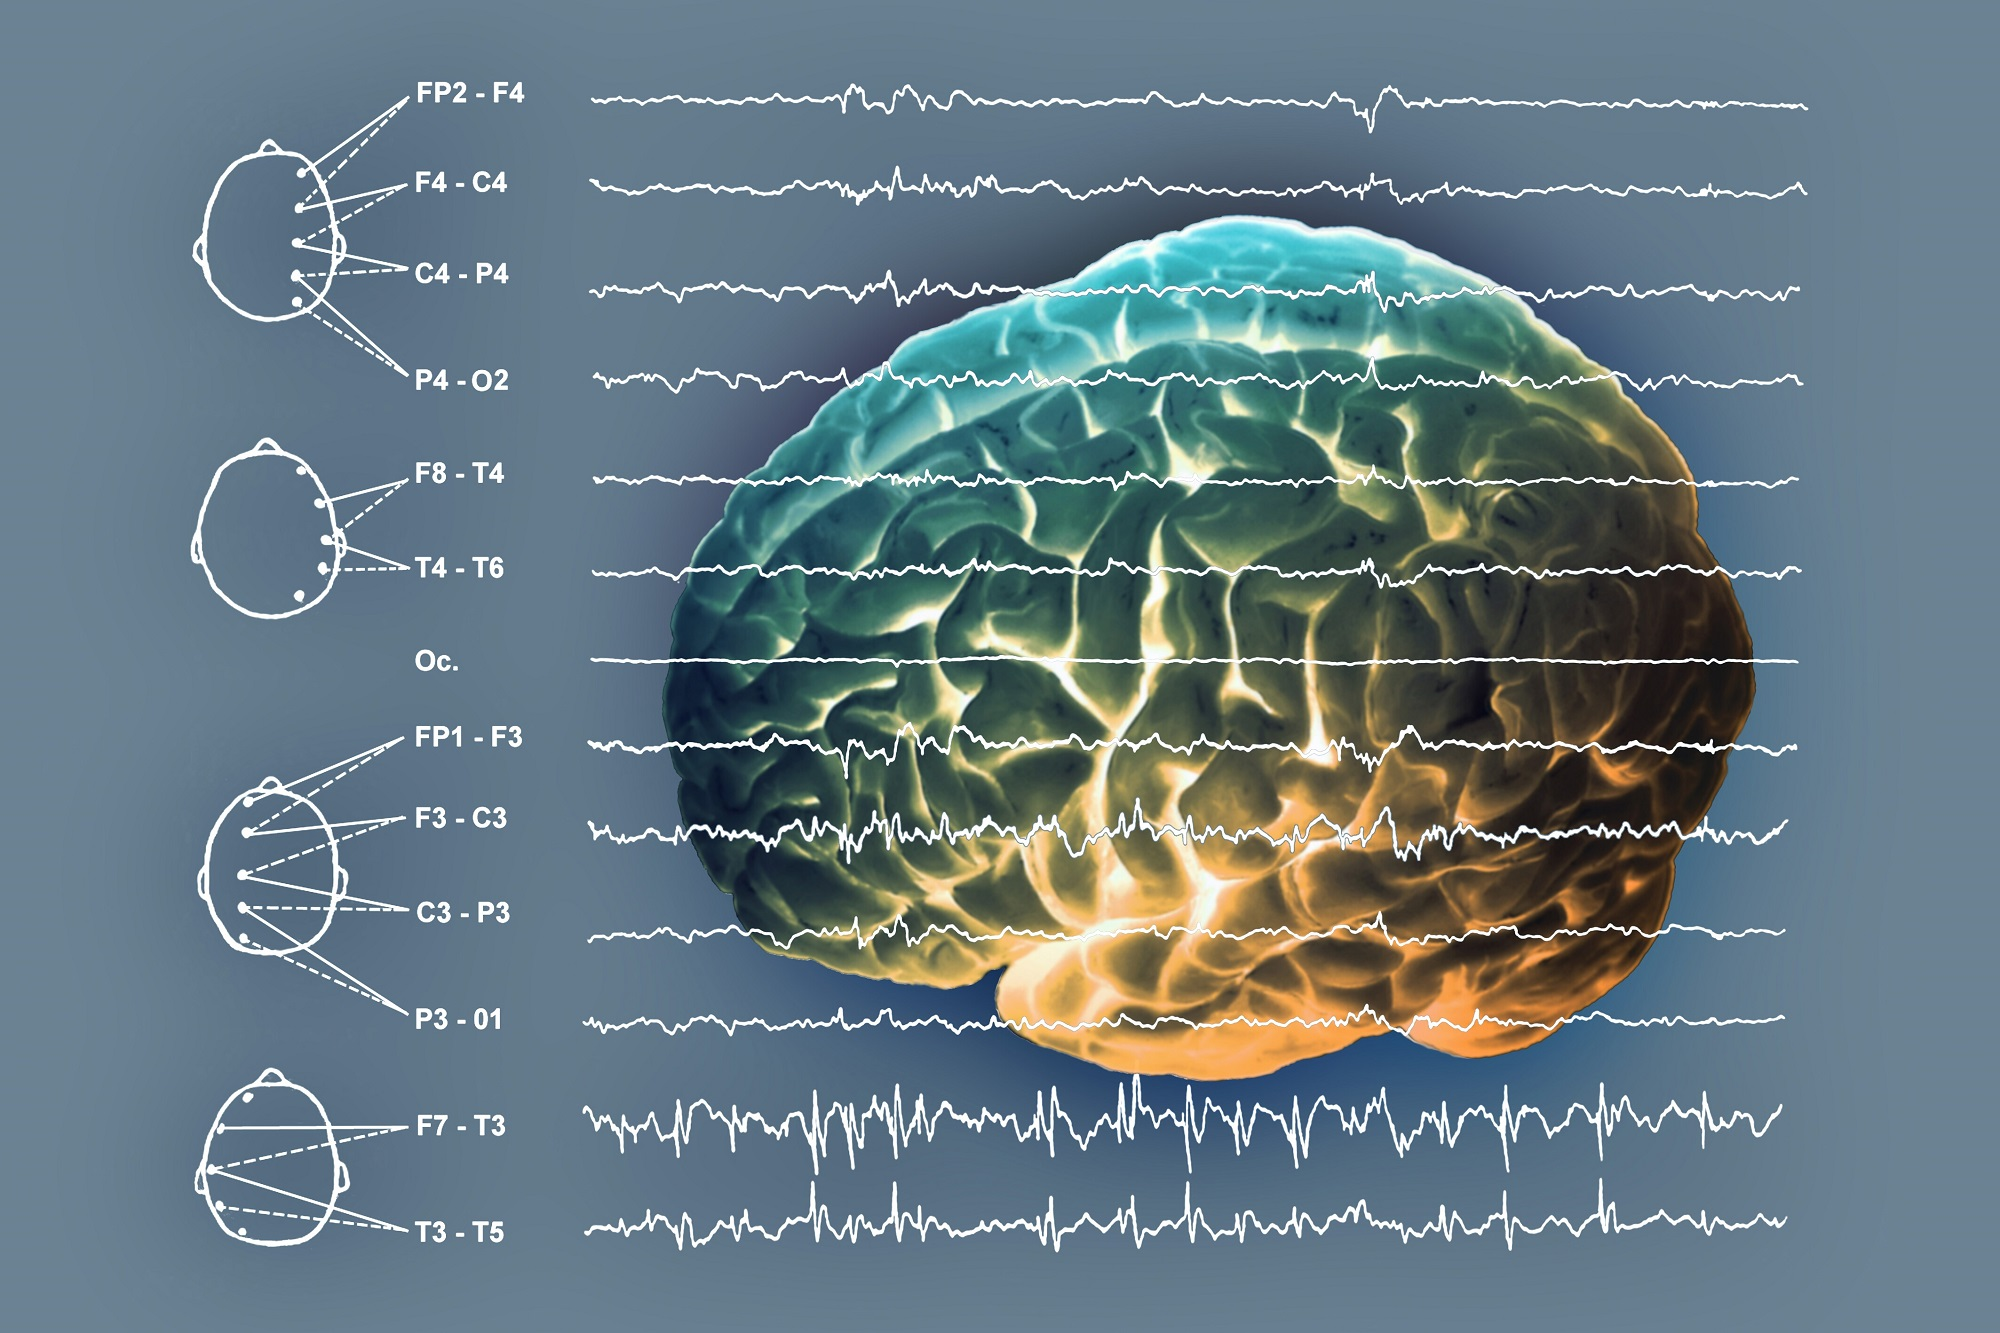 Myoclonic-Atonic Seizures and Lennox-Gastaut Syndrome Present With